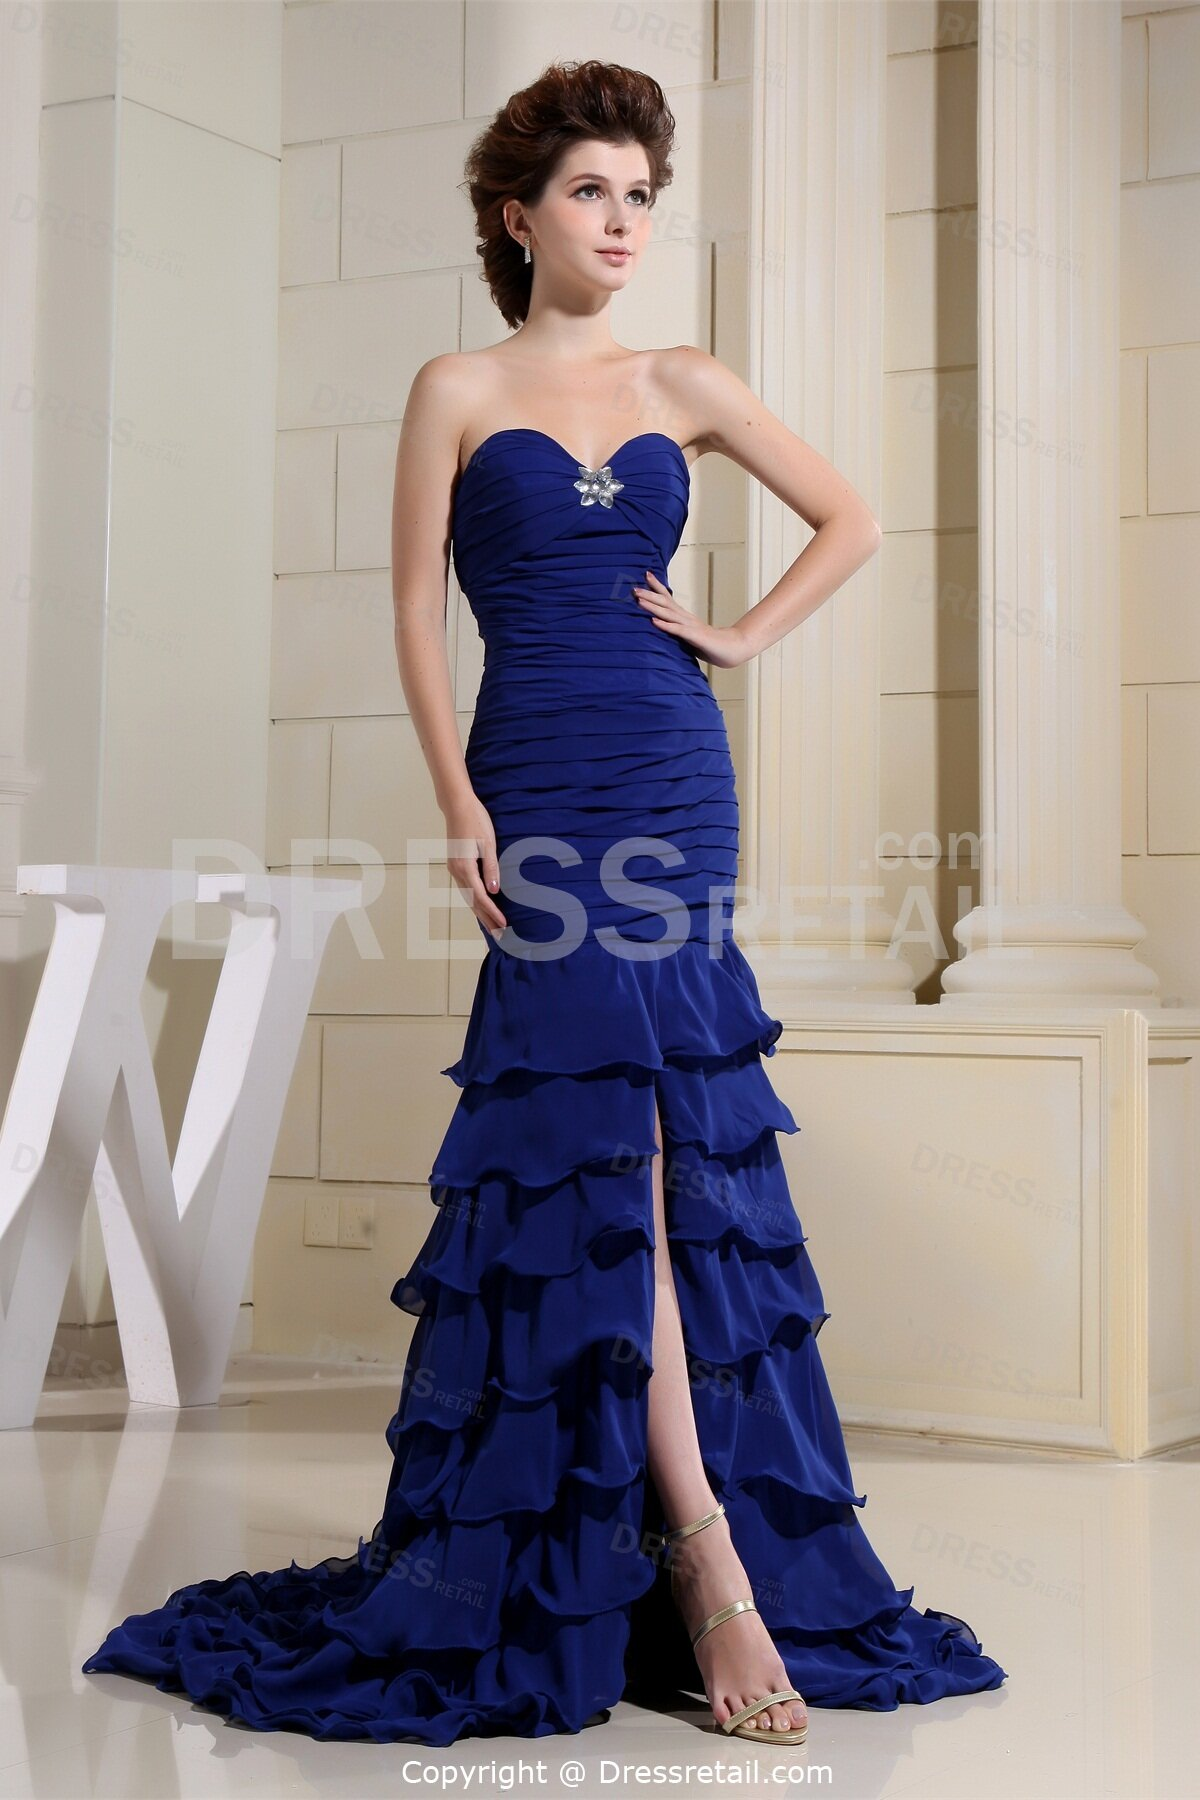 Royal blue wedding dresses Photo - 6